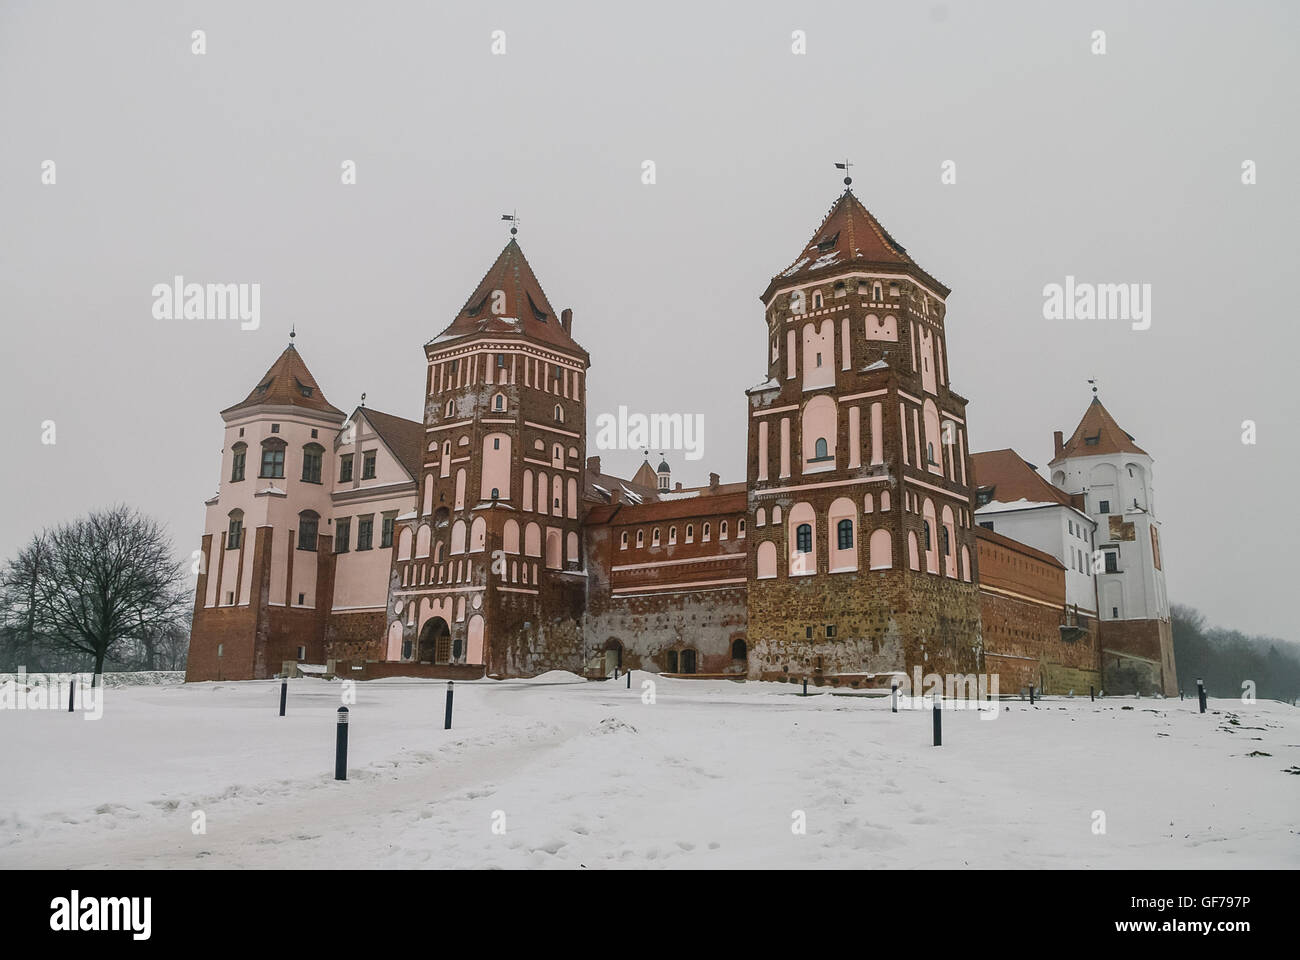 Mir medieval castle complex in winter with snow. Belarus (UNESCO world heritage site) - Stock Image